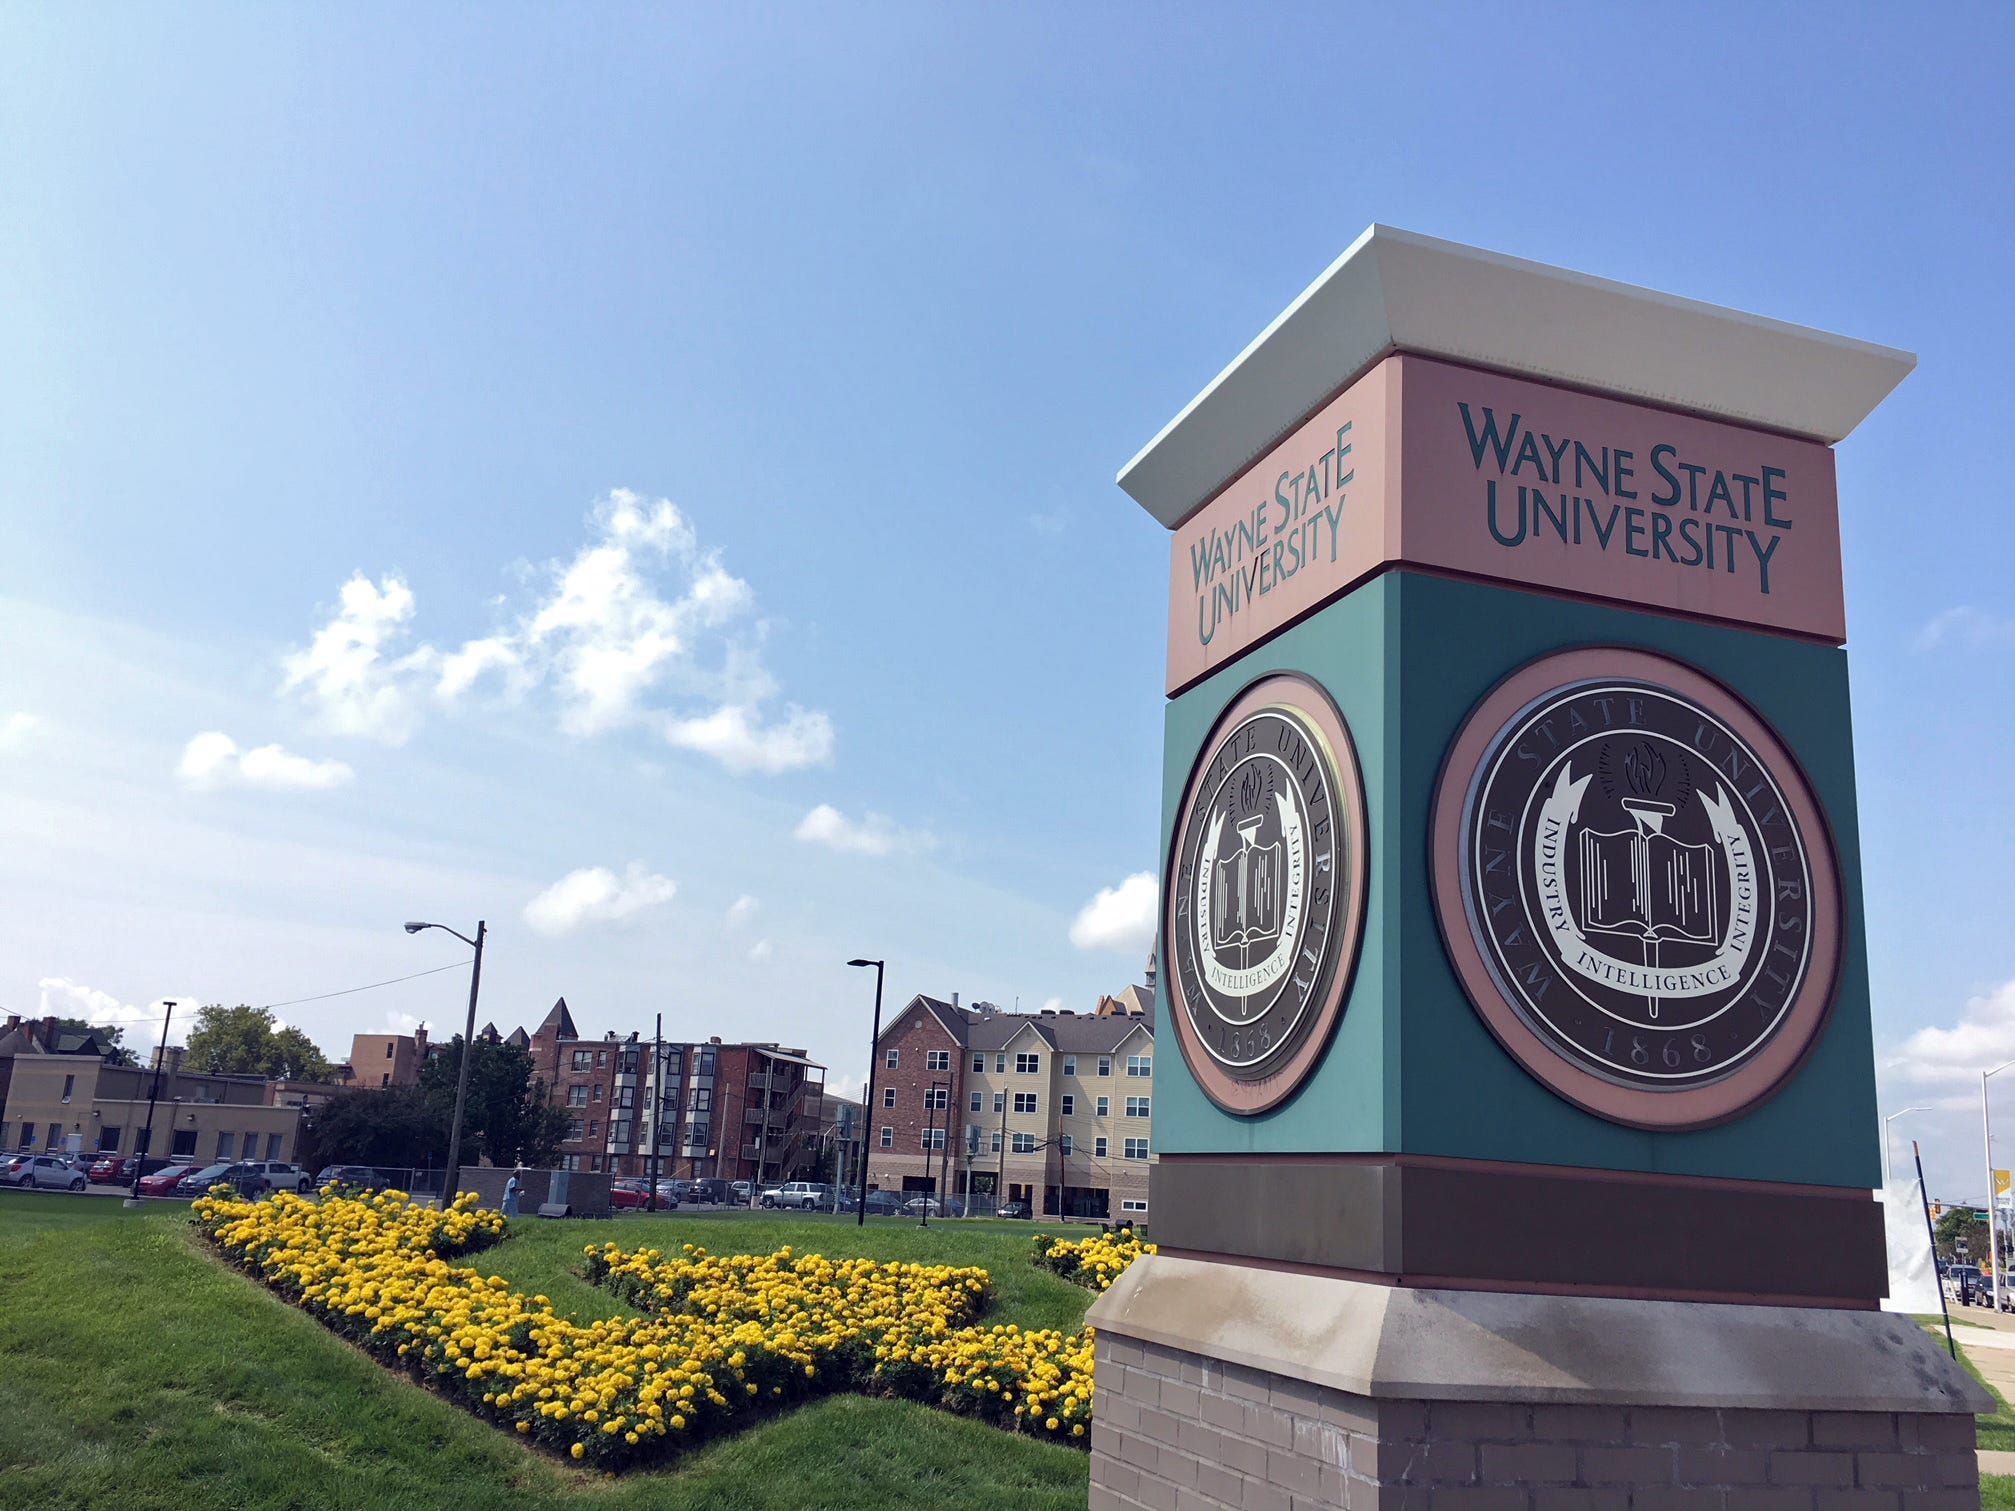 Wayne State University is a stop on Detroit's QLine.